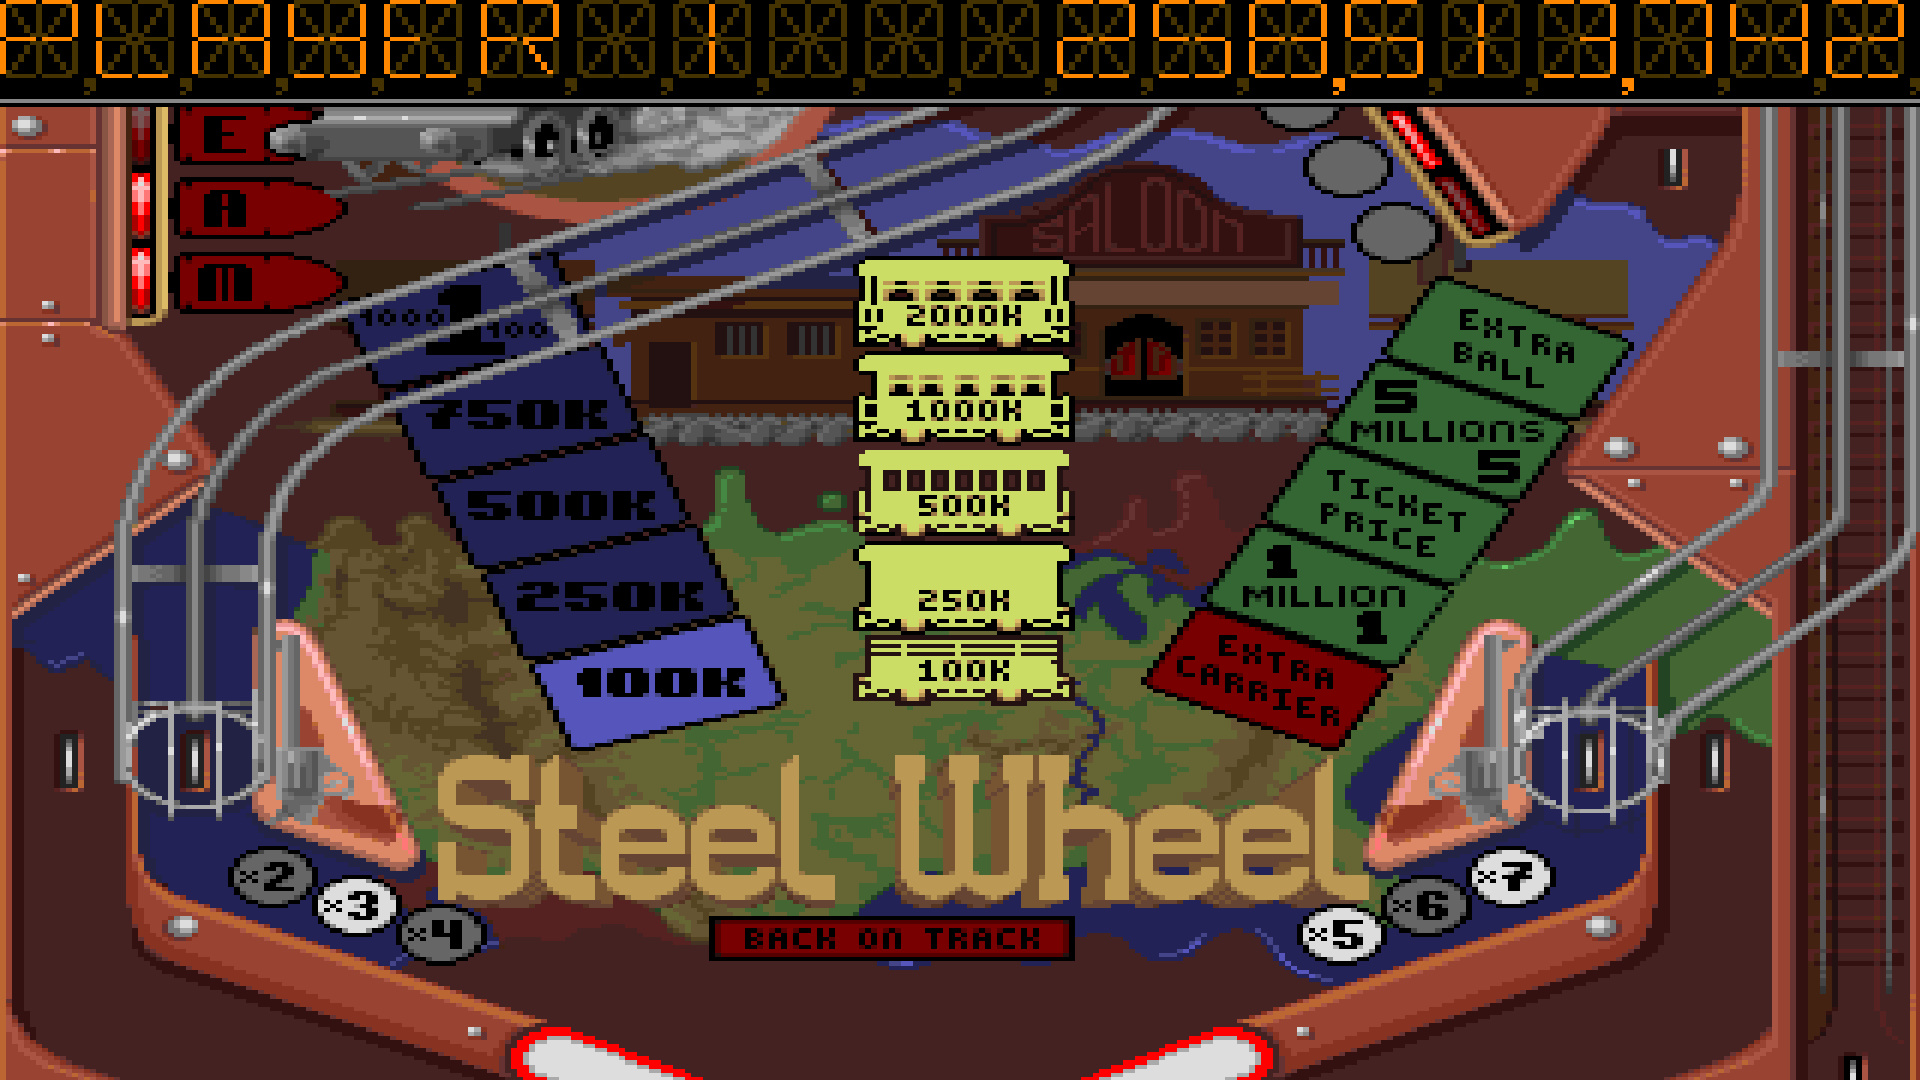 TheTrickster: Pinball Dreams: Steel Wheel (Amiga Emulated) 258,513,742 points on 2016-10-22 03:04:16